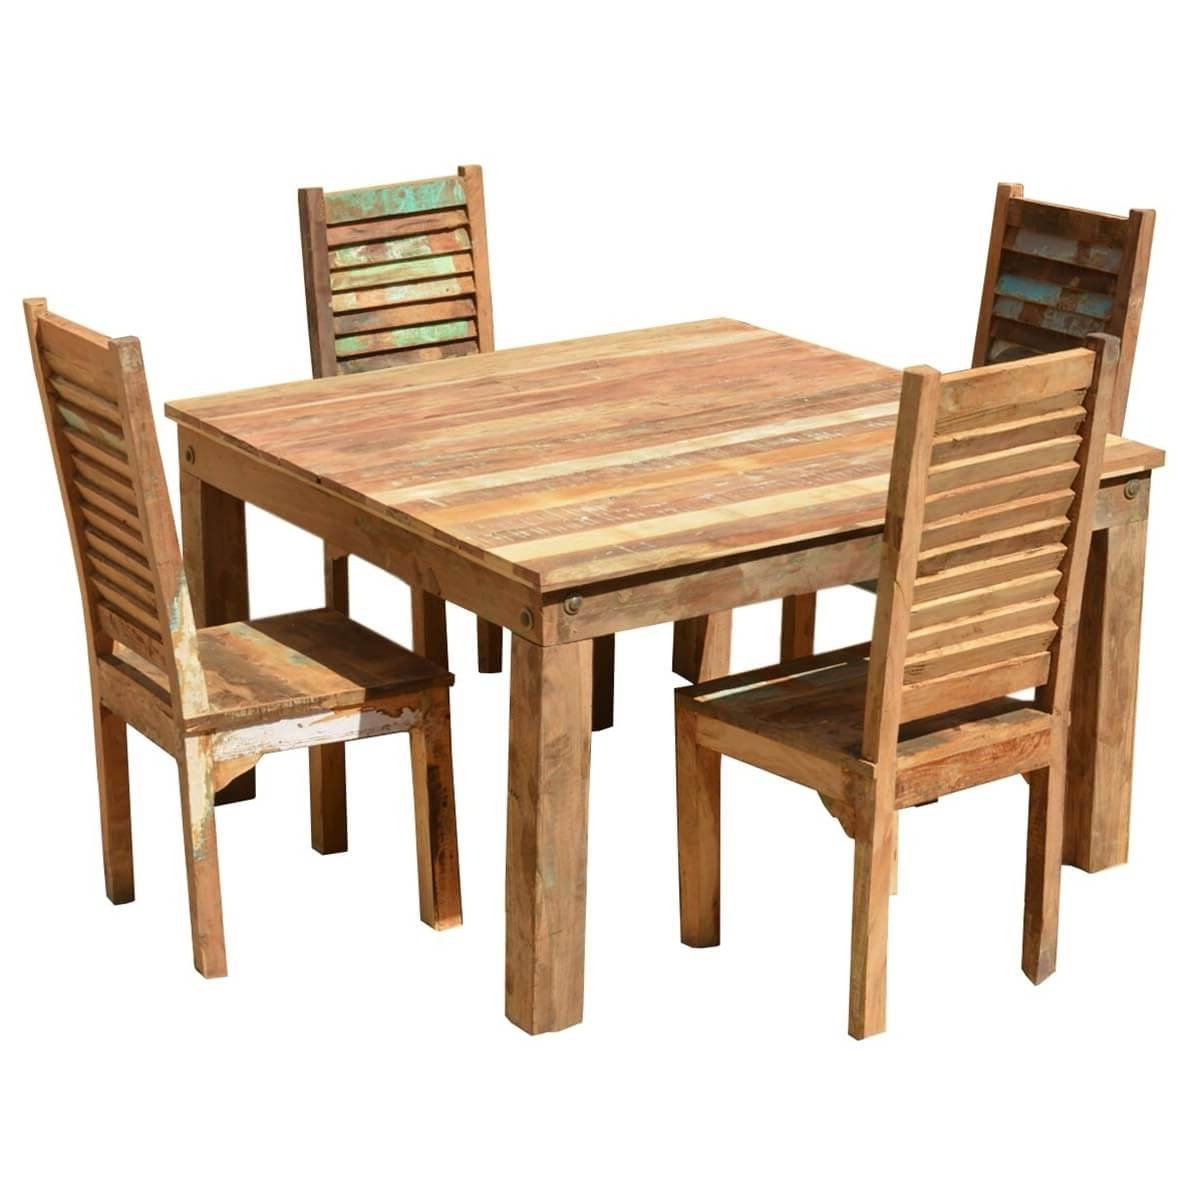 Trendy Cheap Reclaimed Wood Dining Tables For Ohio Reclaimed Wood Furniture Dining Table & Shutter Back Chairs Set (View 19 of 25)